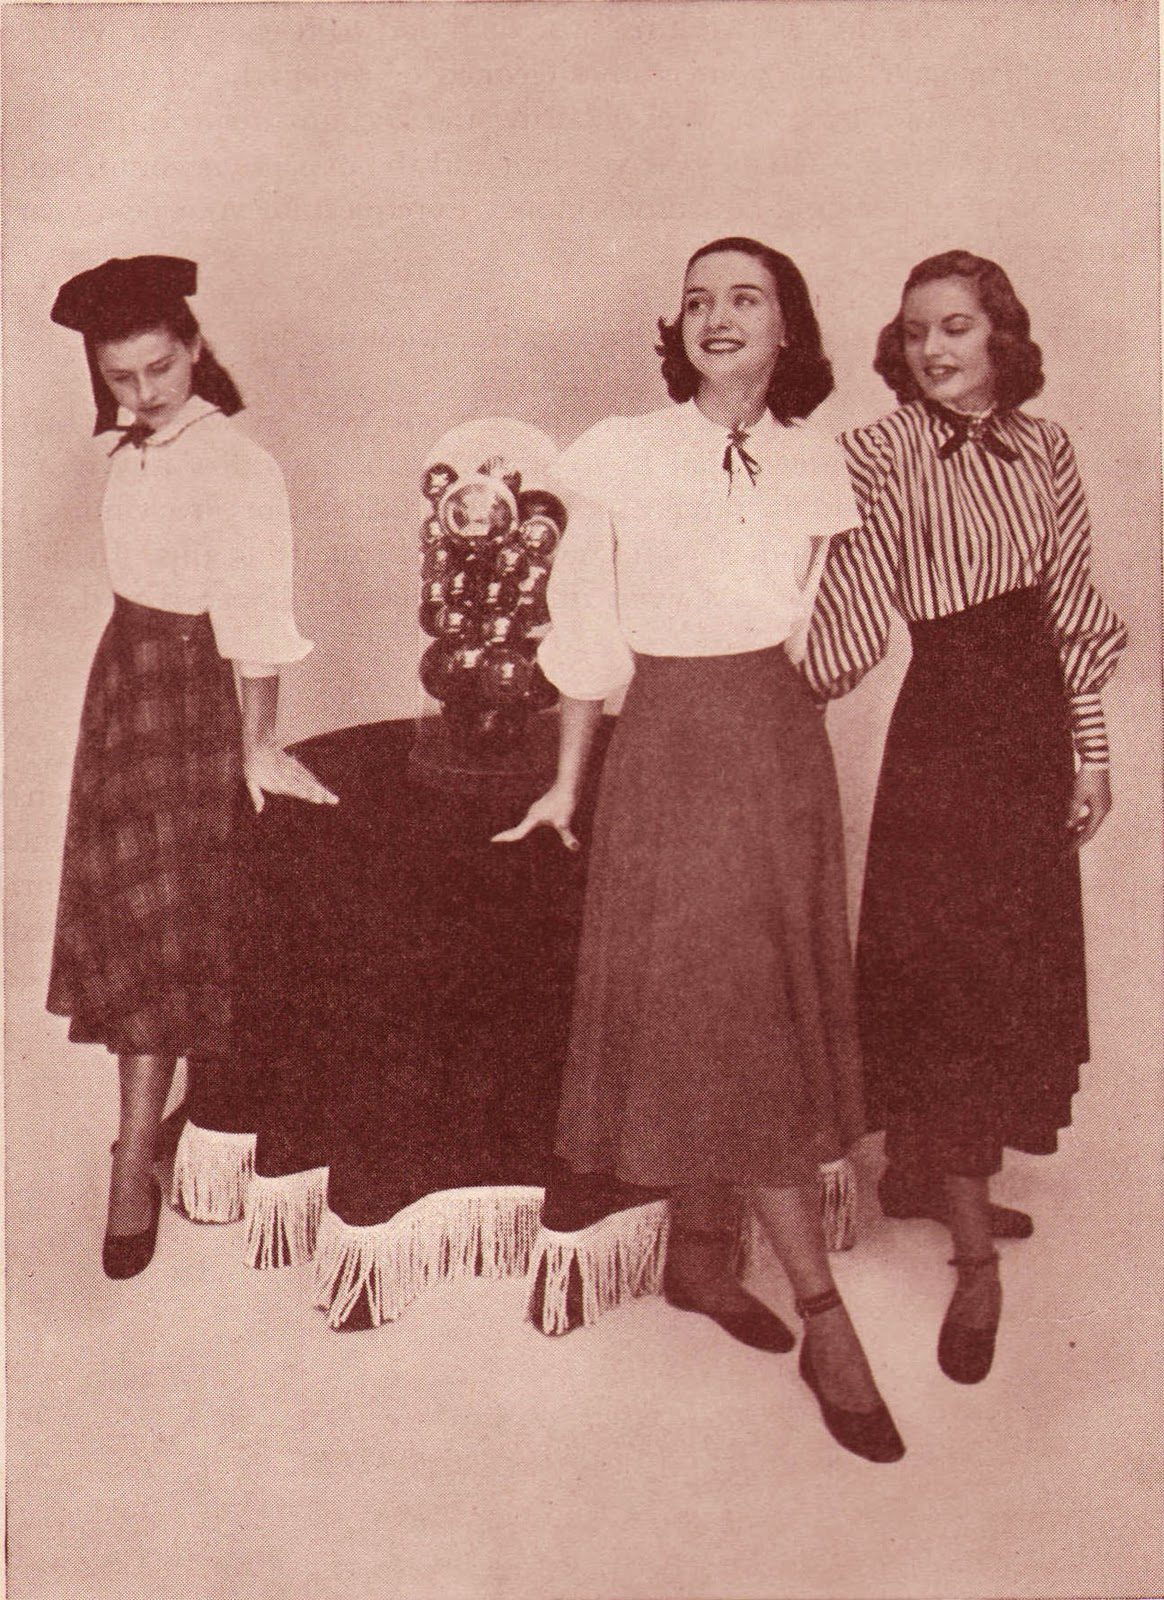 1940s fashion Wardrobe Plan - Dress accurately